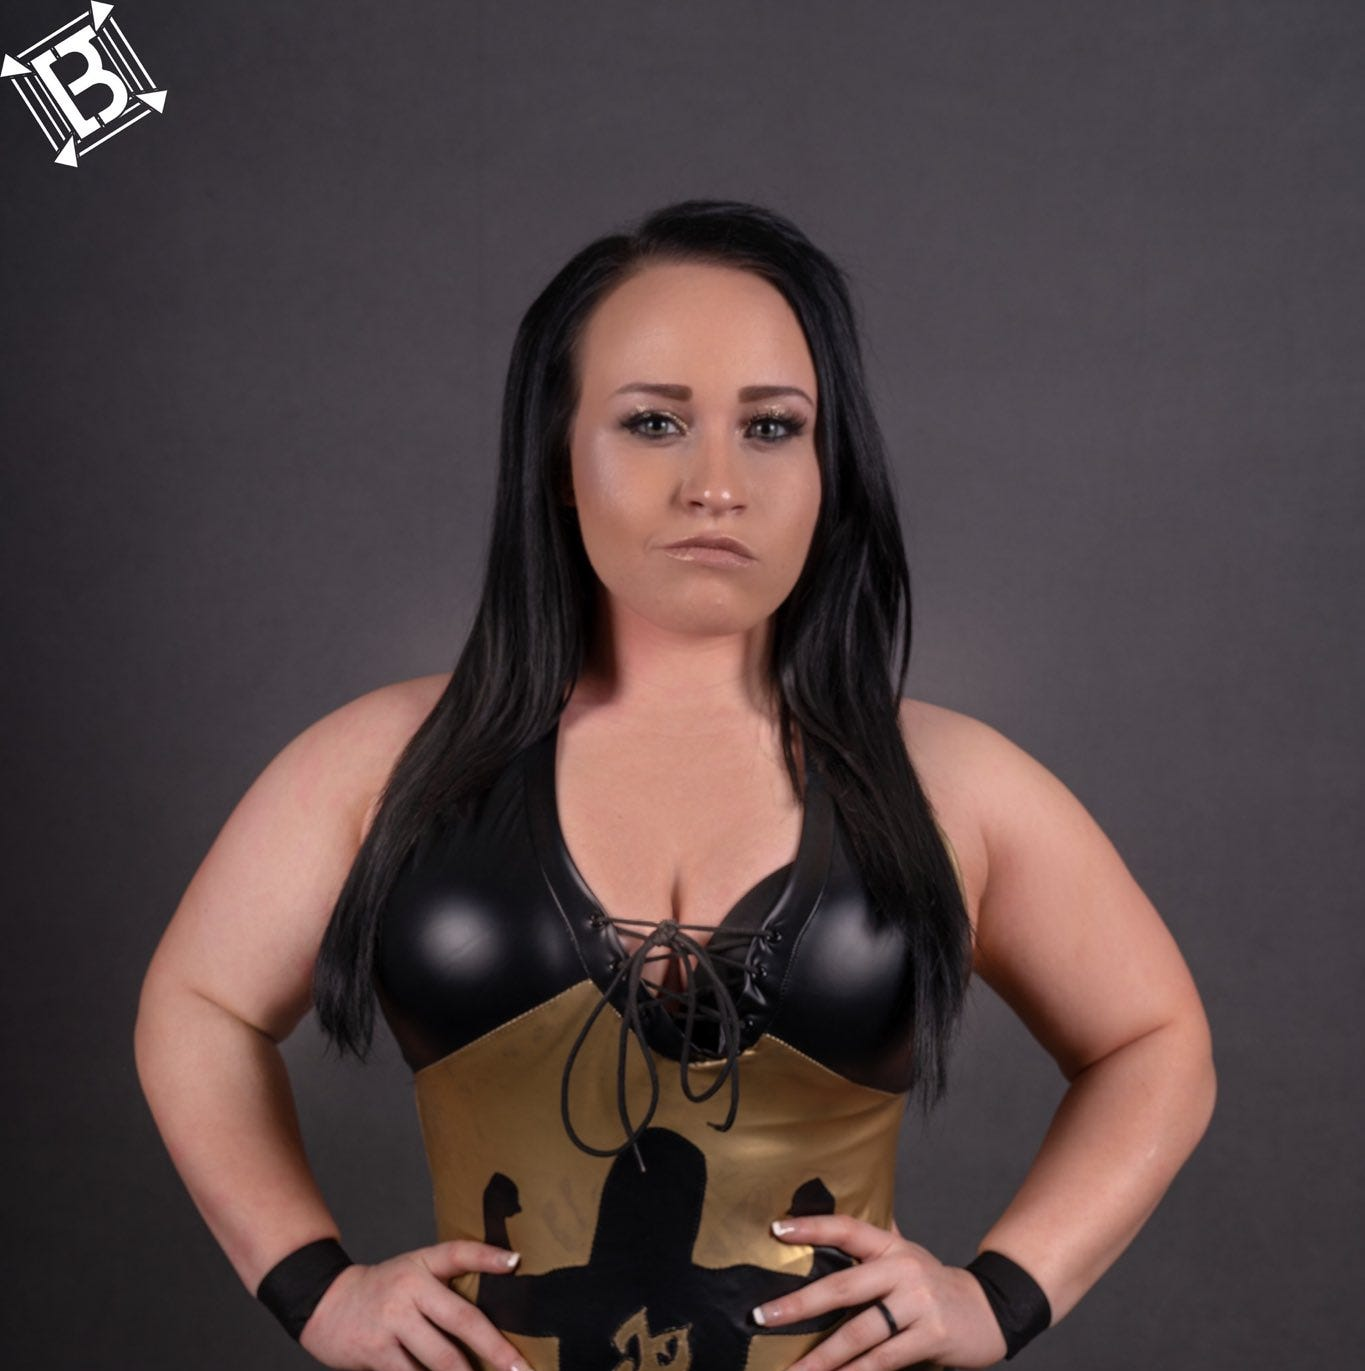 Long journey brings independent professional wrestler Jordynne Grace to York County